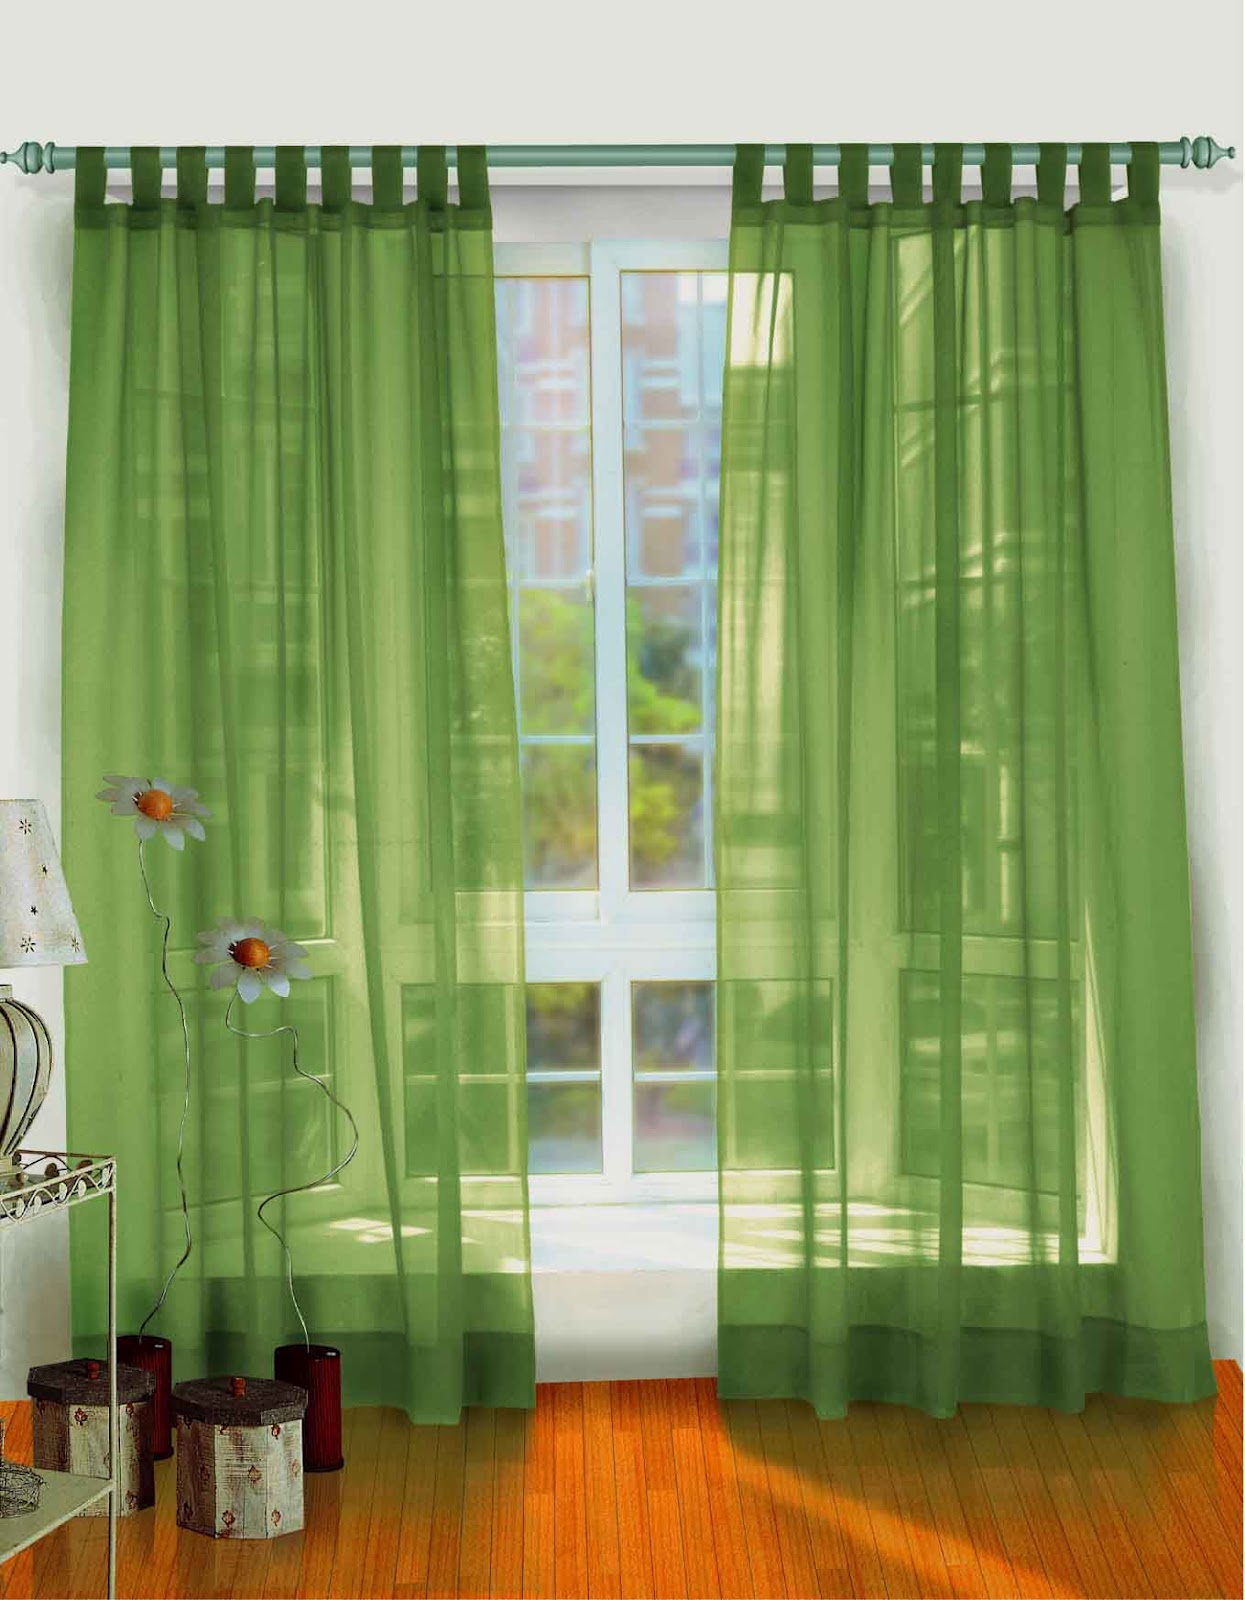 Window and door curtains design interior design ideas Window curtains design ideas